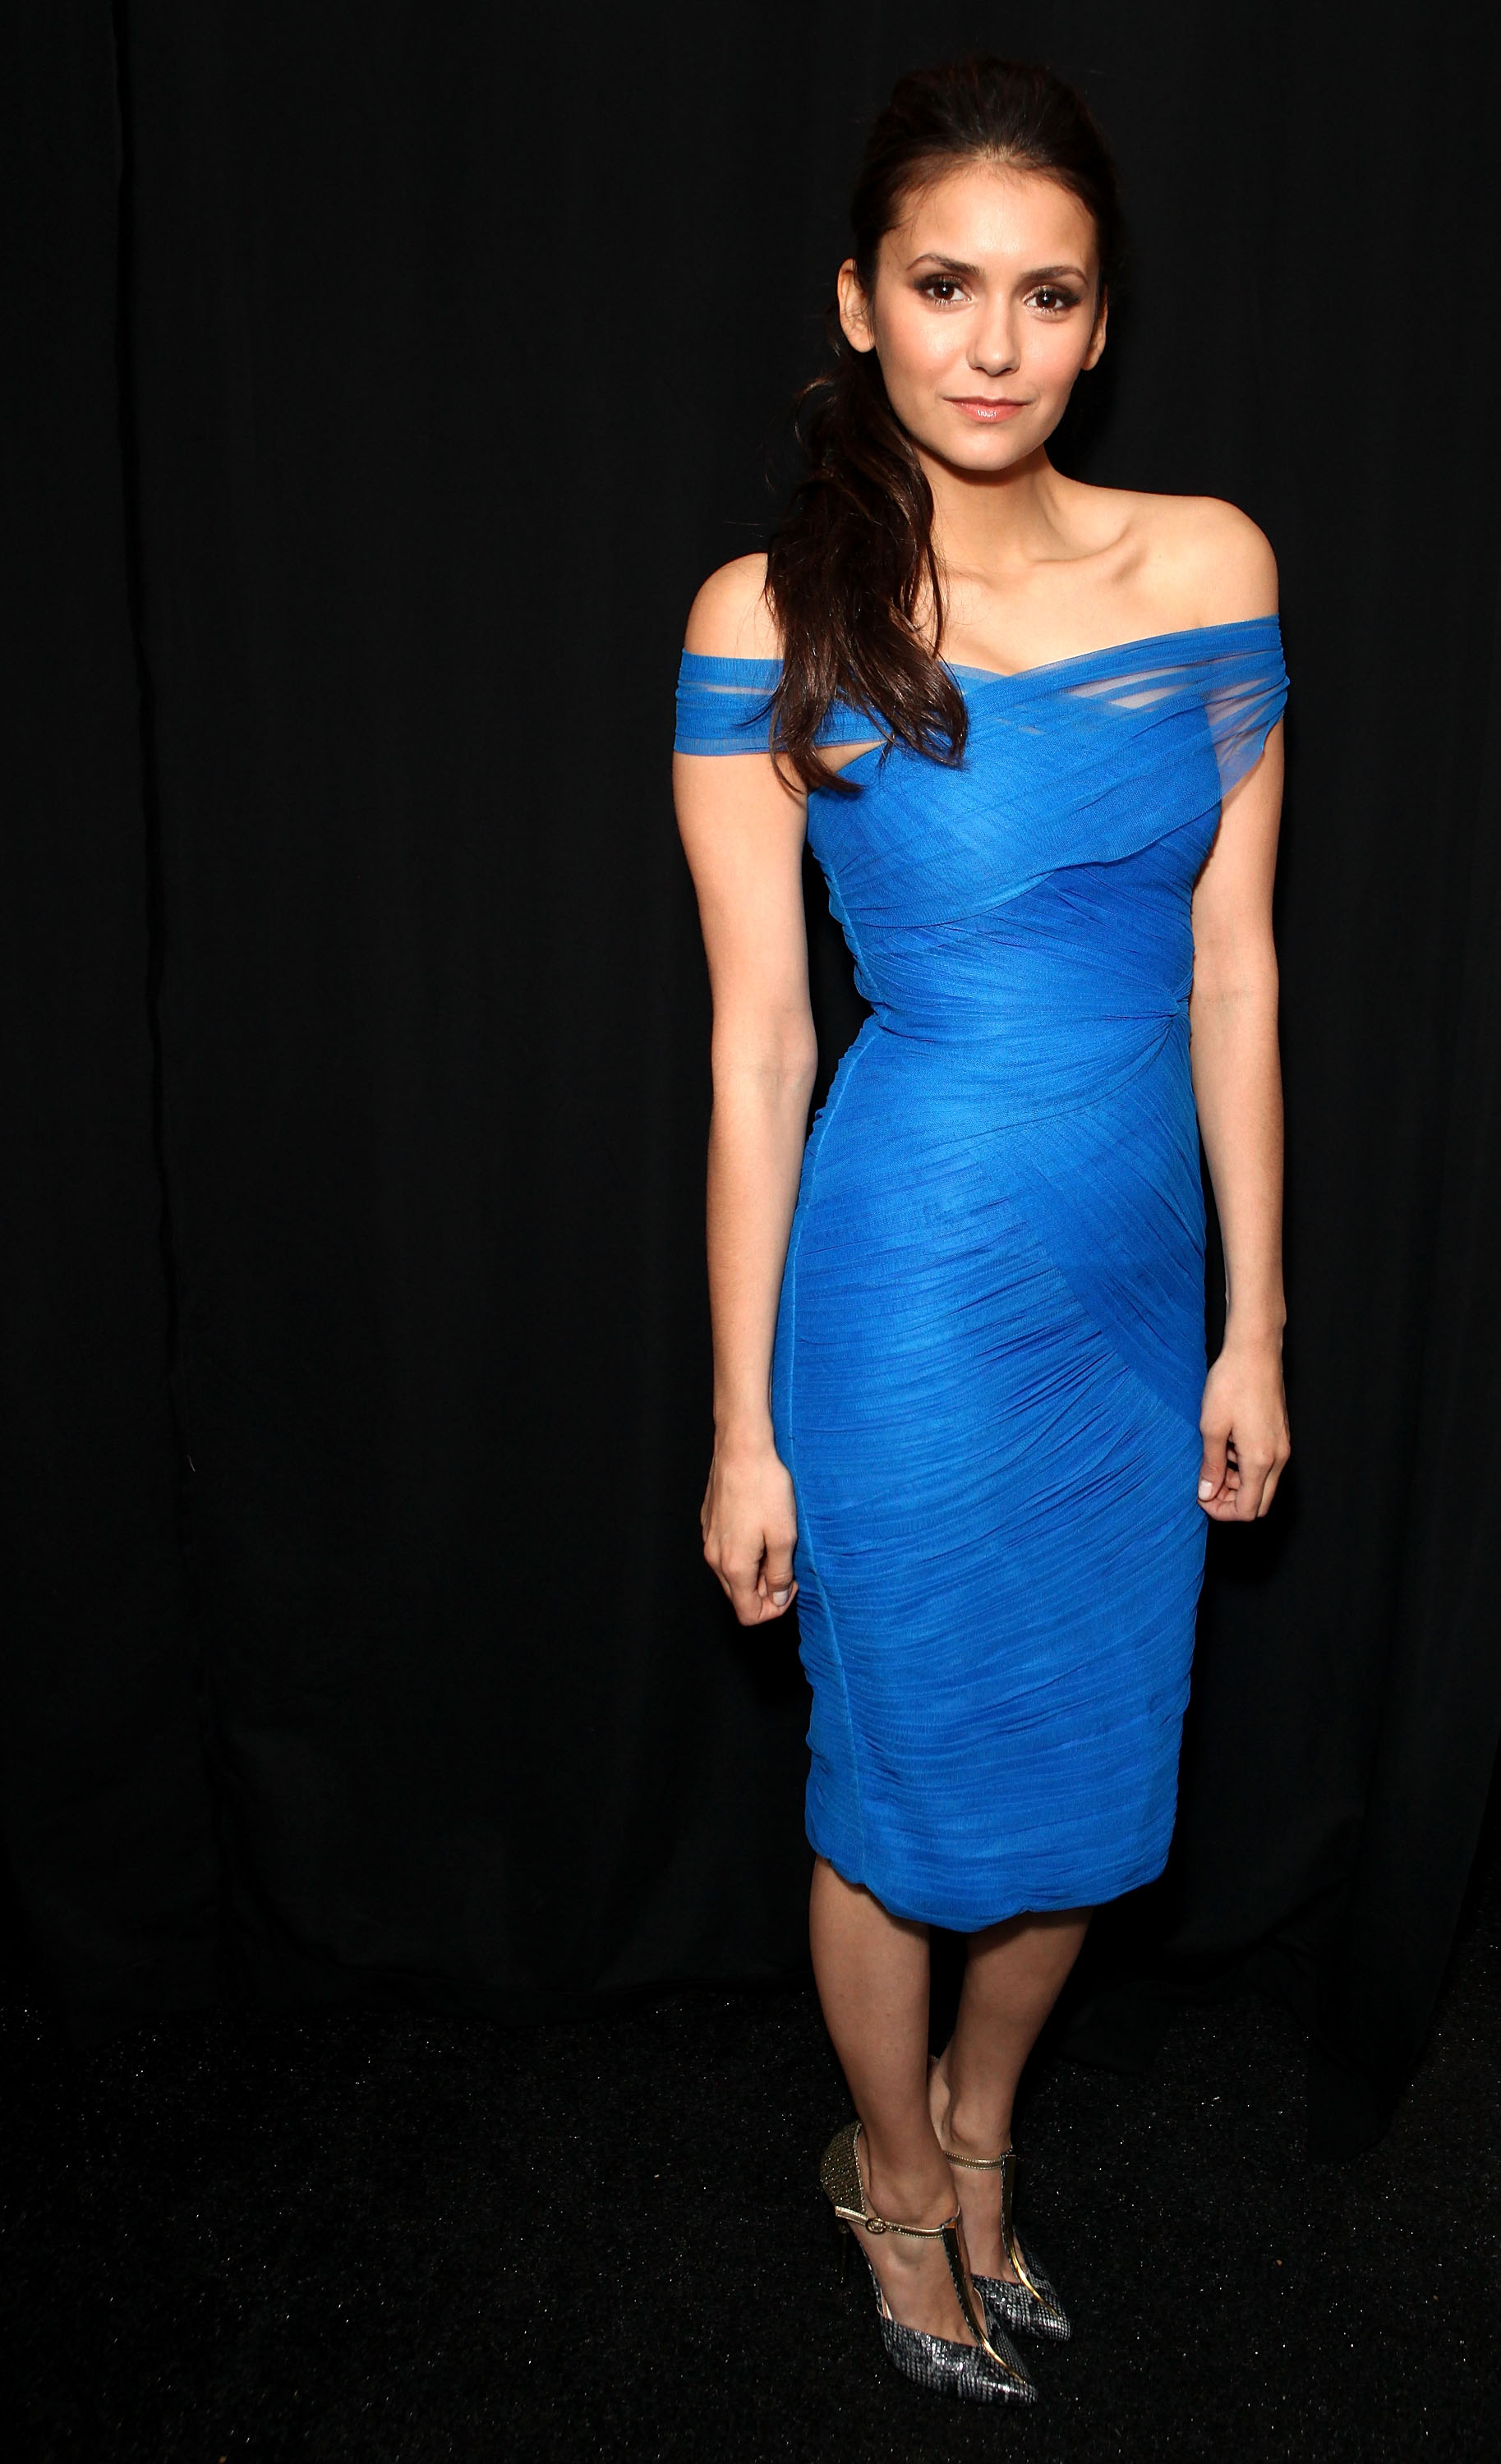 The actress donned a beautiful blue Monique Lhuillier creation at the designer's Fall '12 runway show.